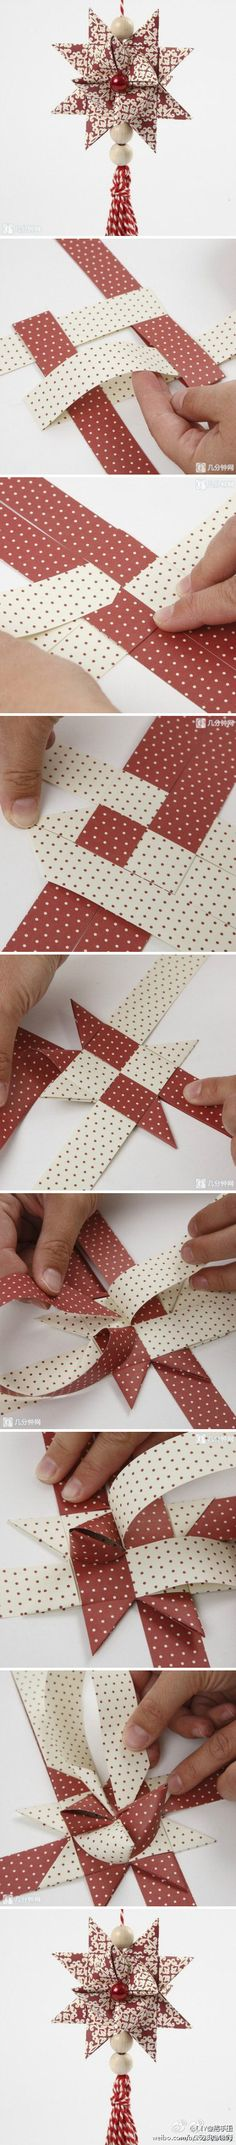 Photo tutorial: Origami Star